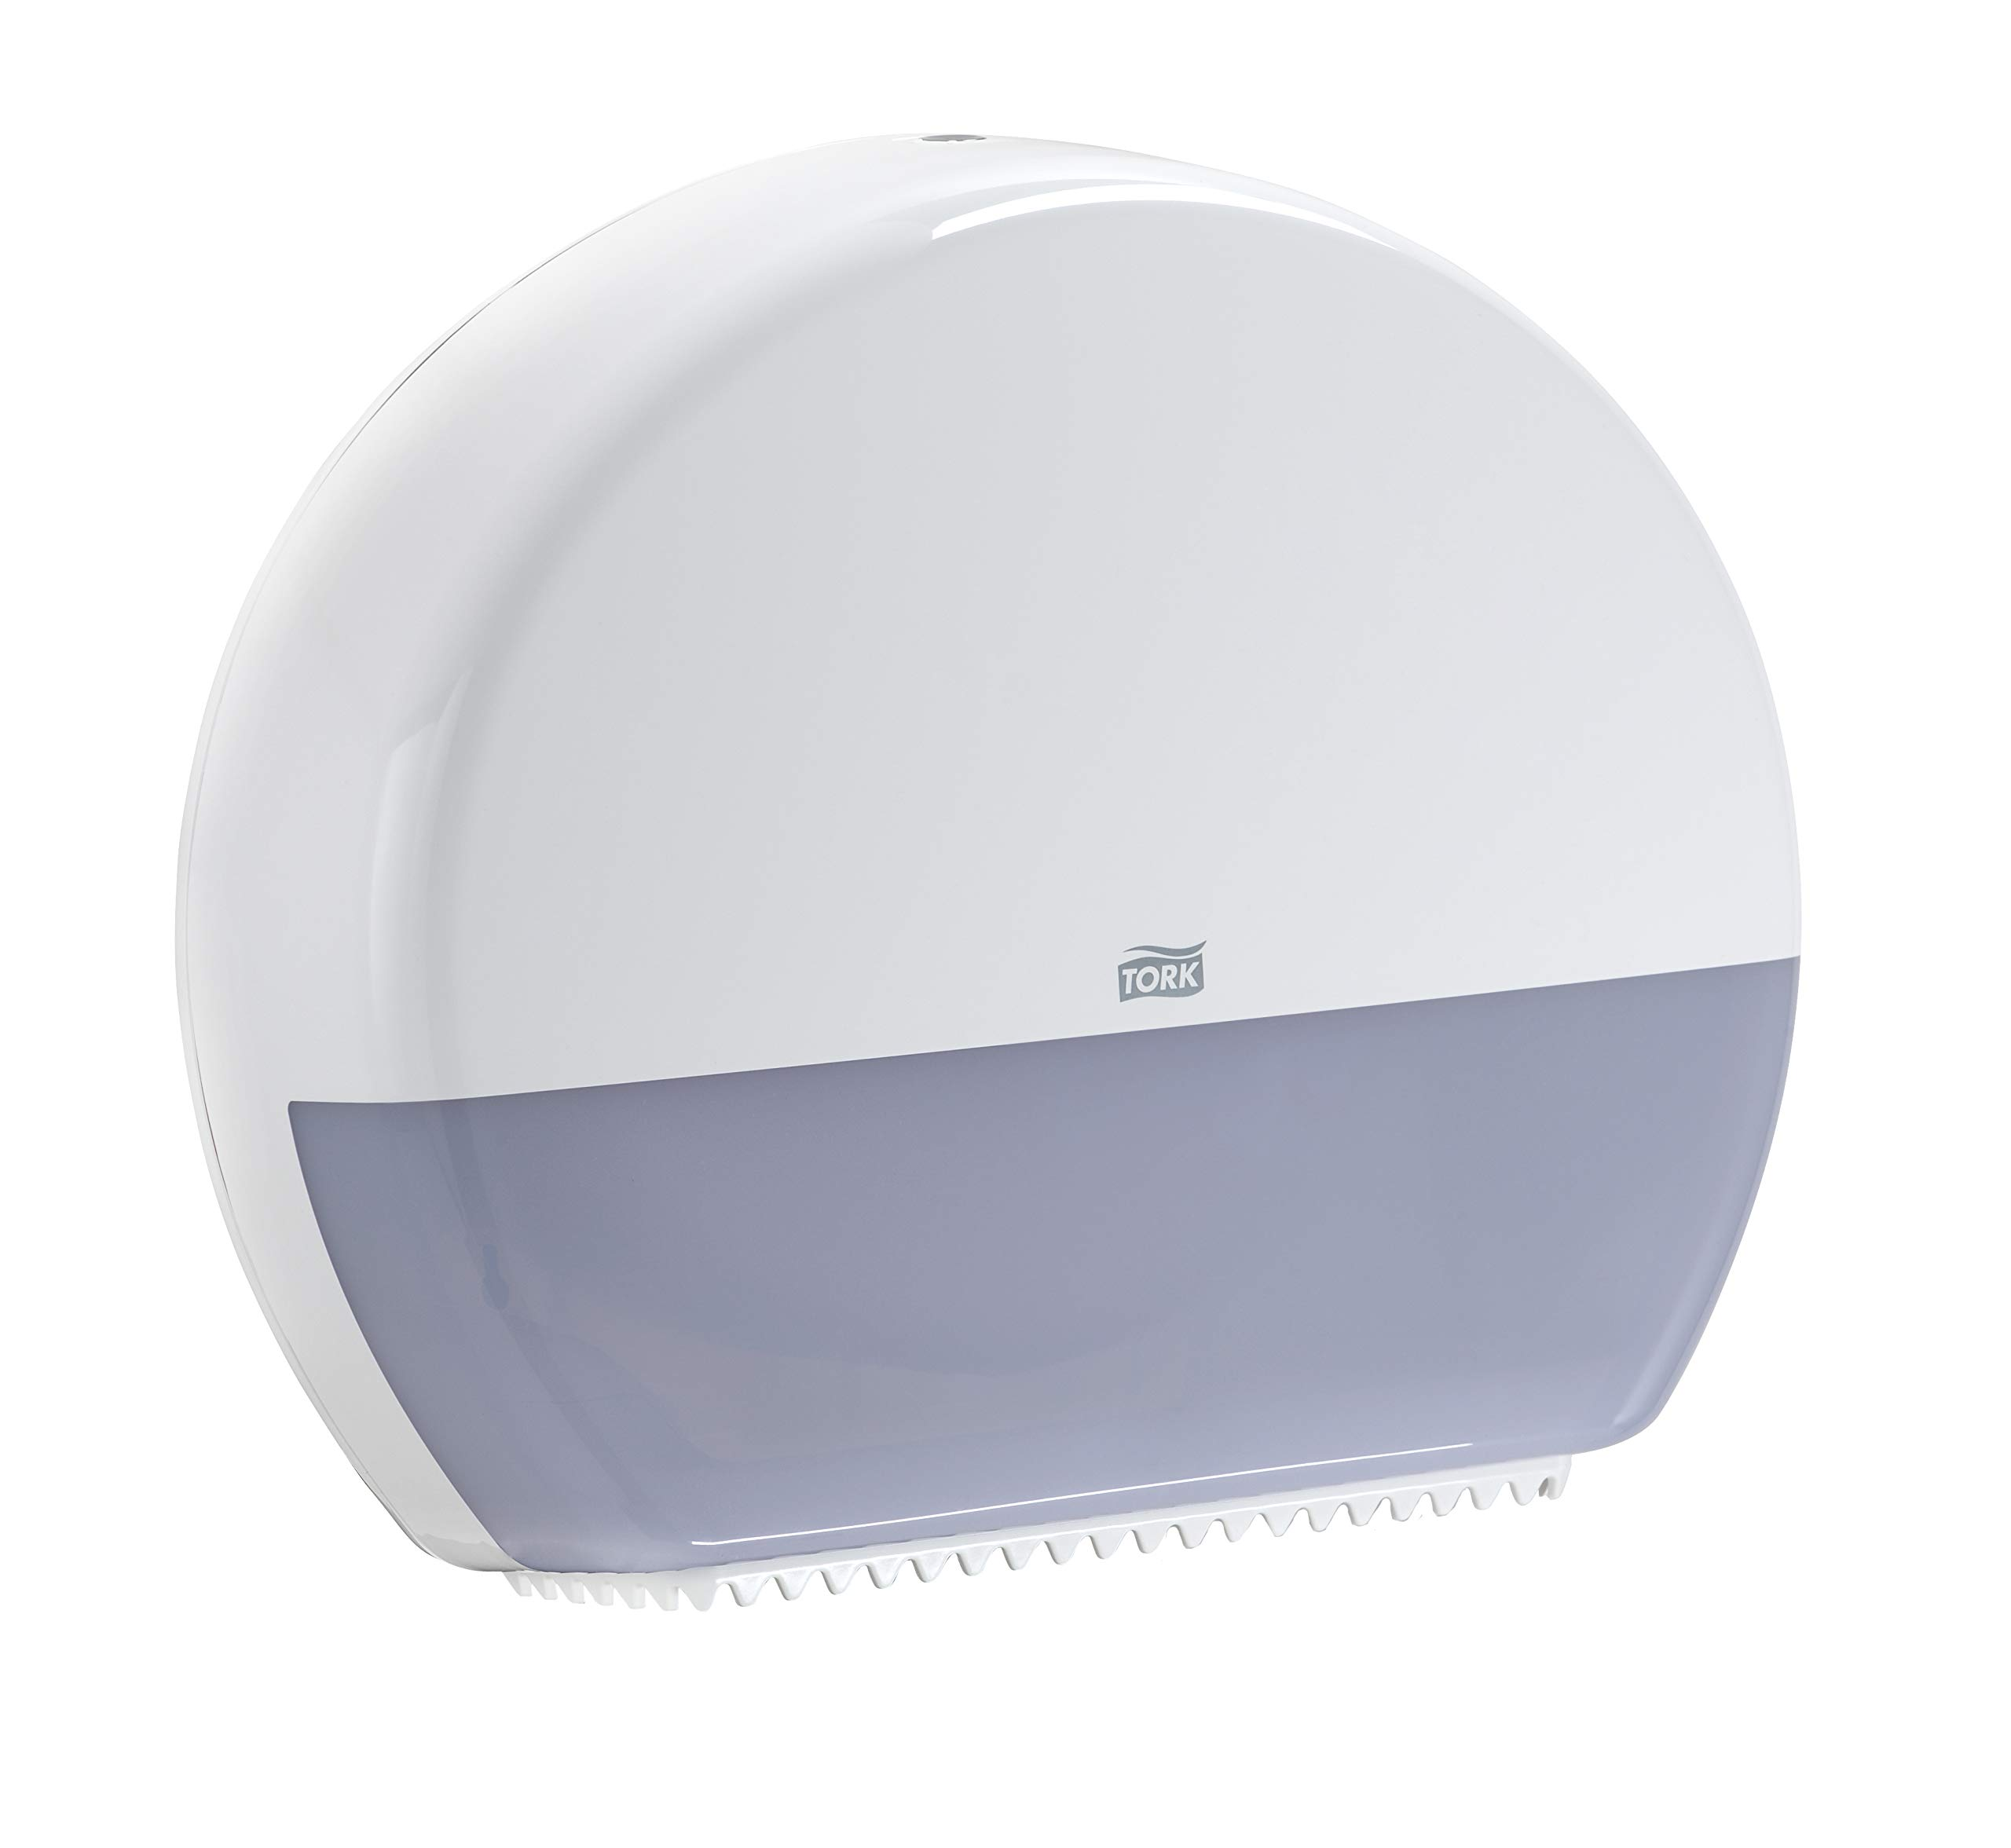 Tork 554020A Elevation Jumbo Bath Tissue Roll Dispenser, 14.2'' Height x 17.2'' Width x 5.2'' Depth, White (Case of 1 Dispenser) for use with Tork 12021502 and 11010402 by Tork